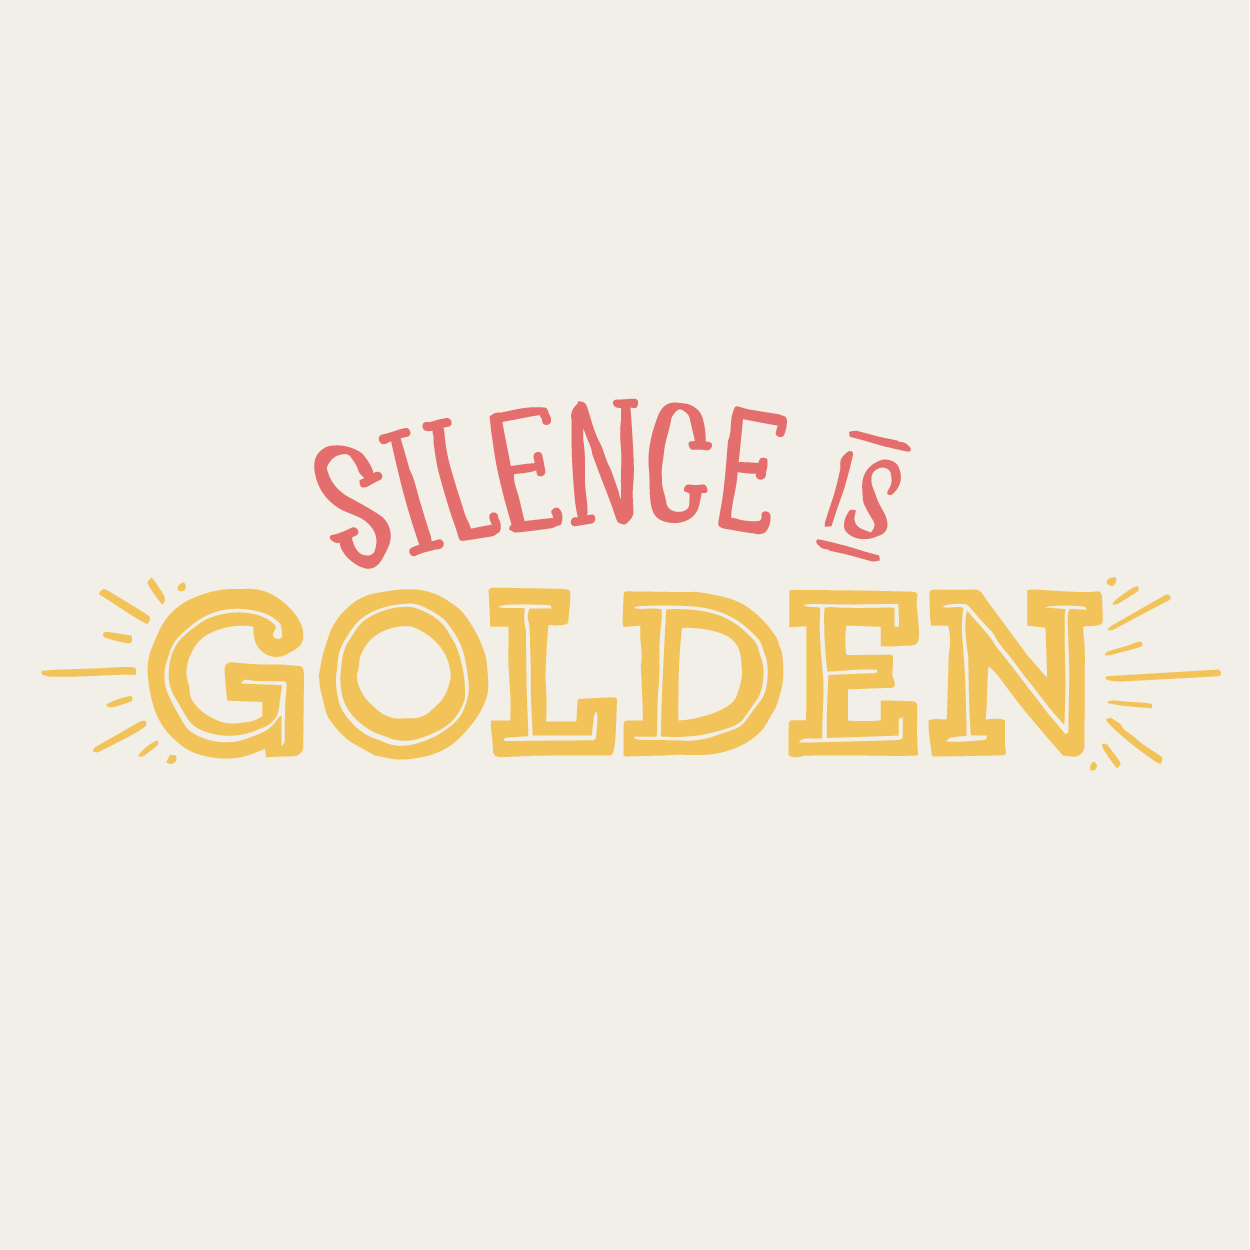 Speech is silver silence is golden essay   Agence Savac Voyages